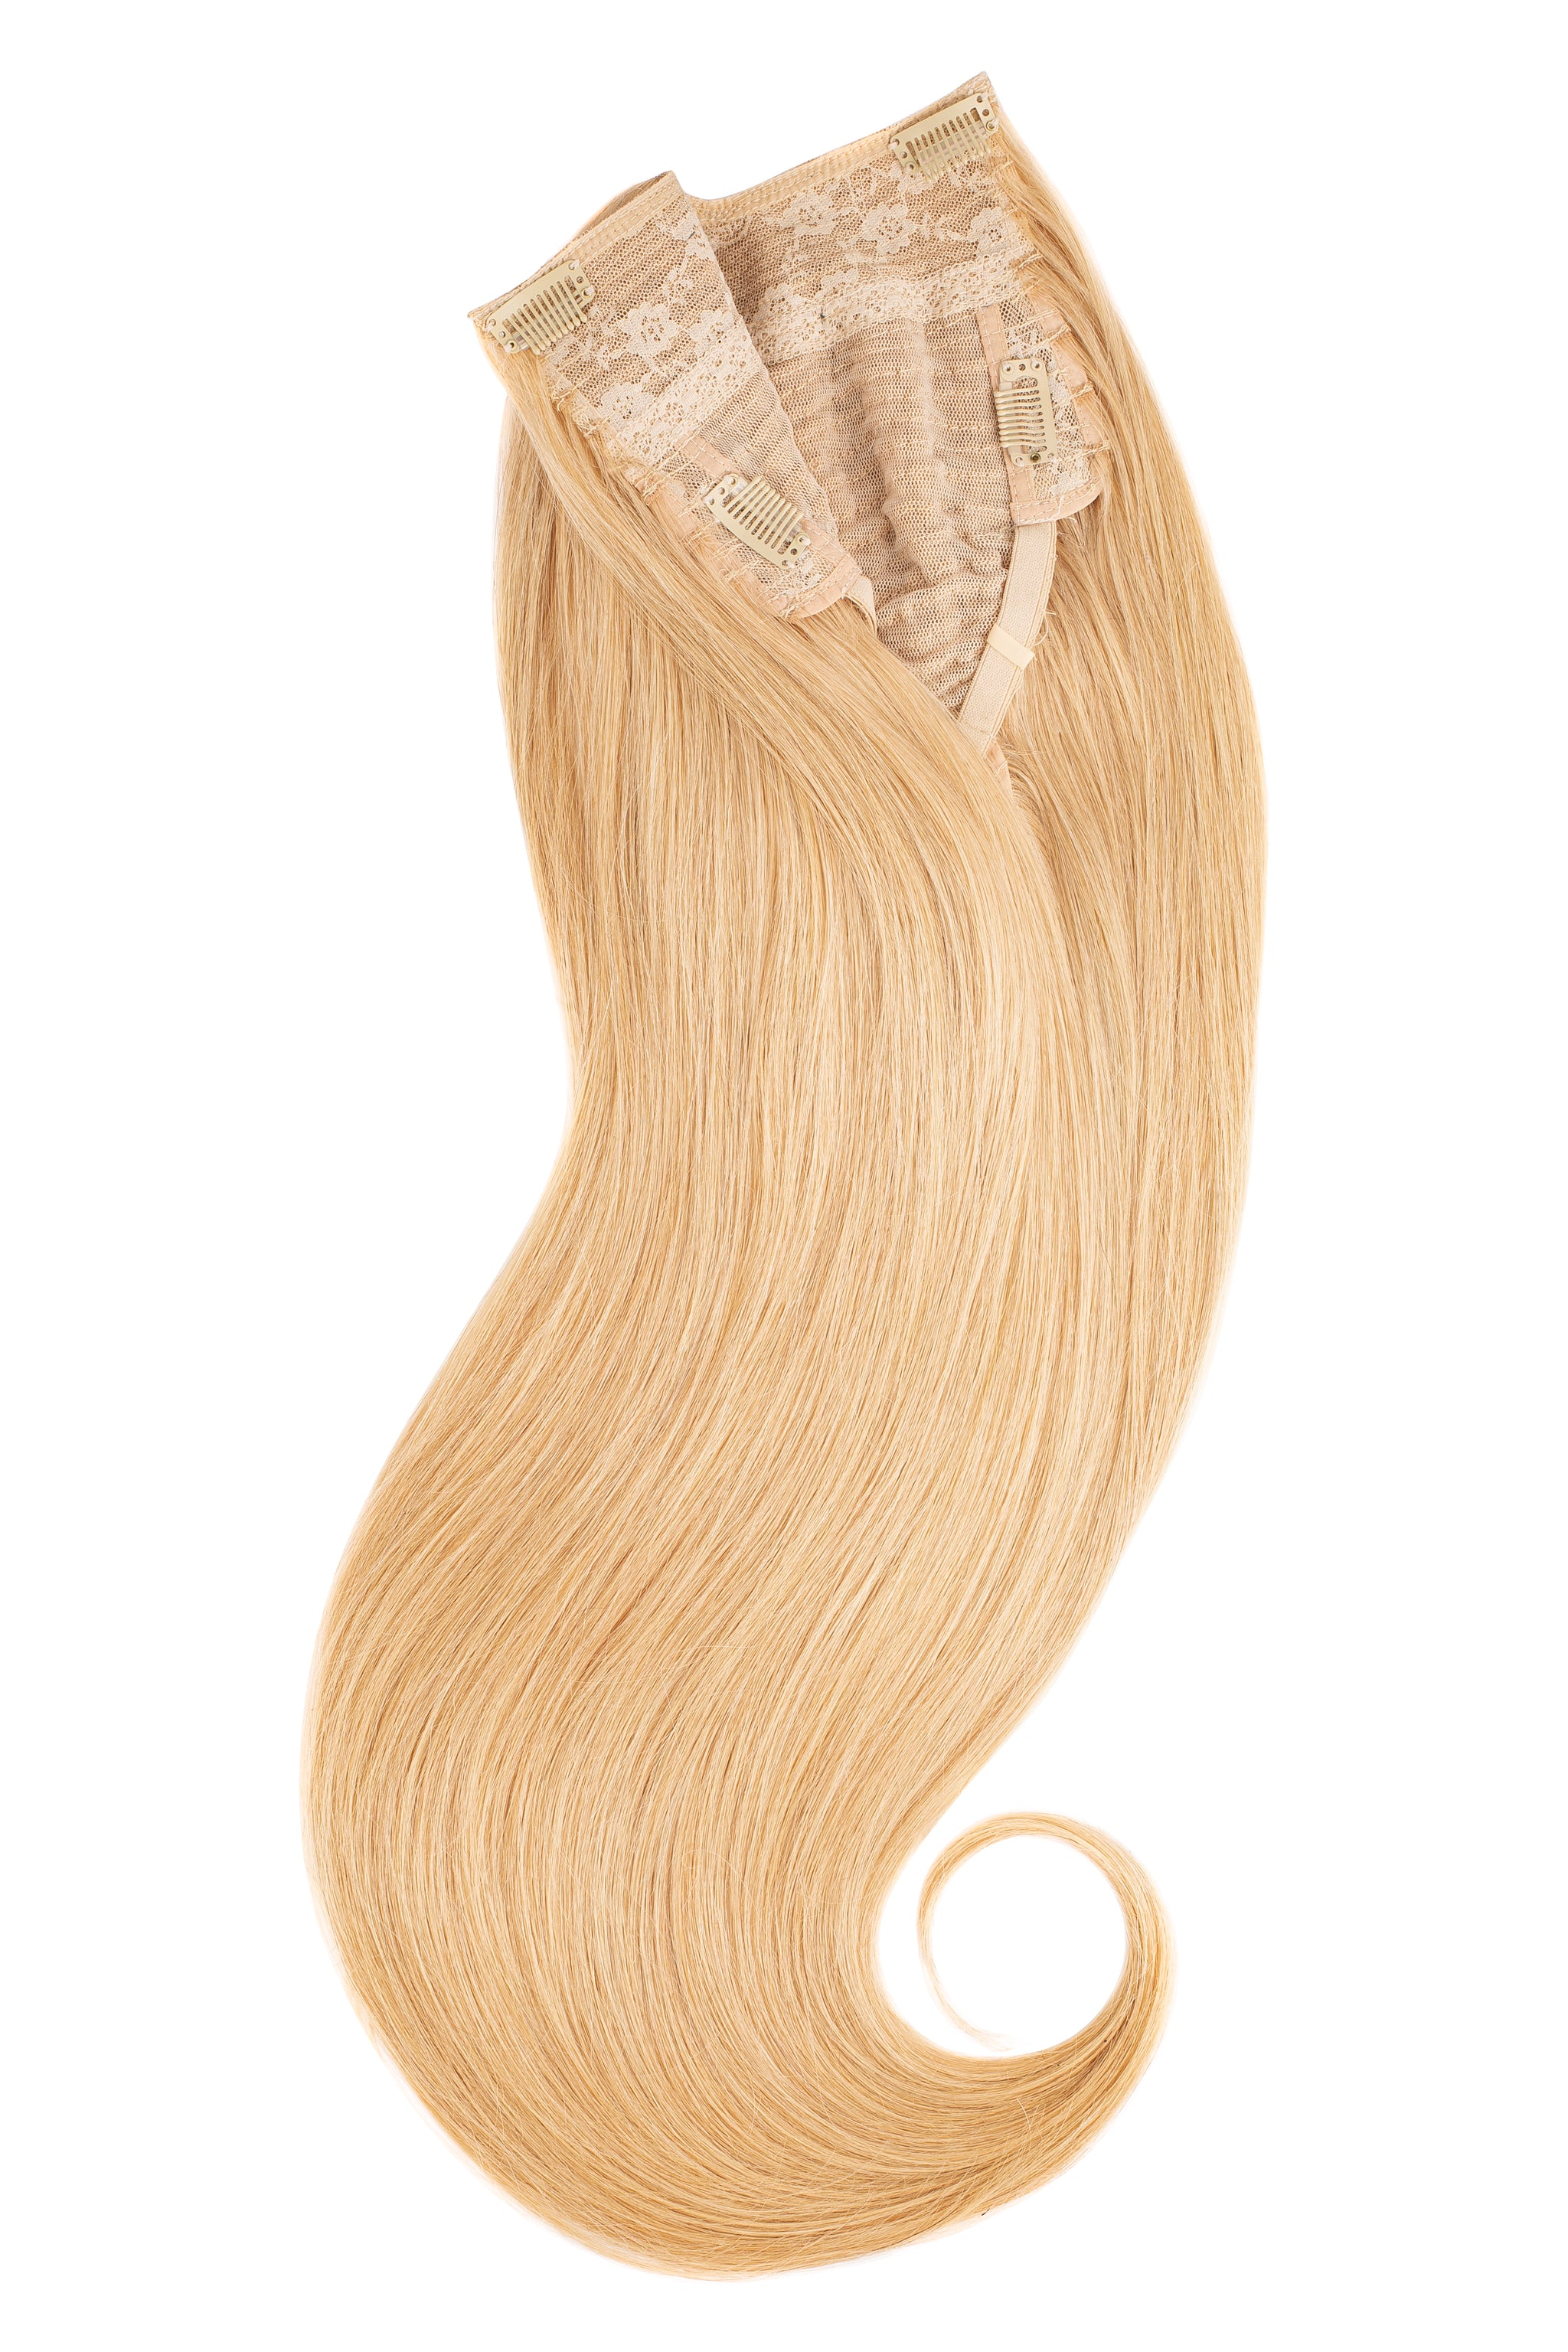 Glam seamless u part halo extensions golden blonde